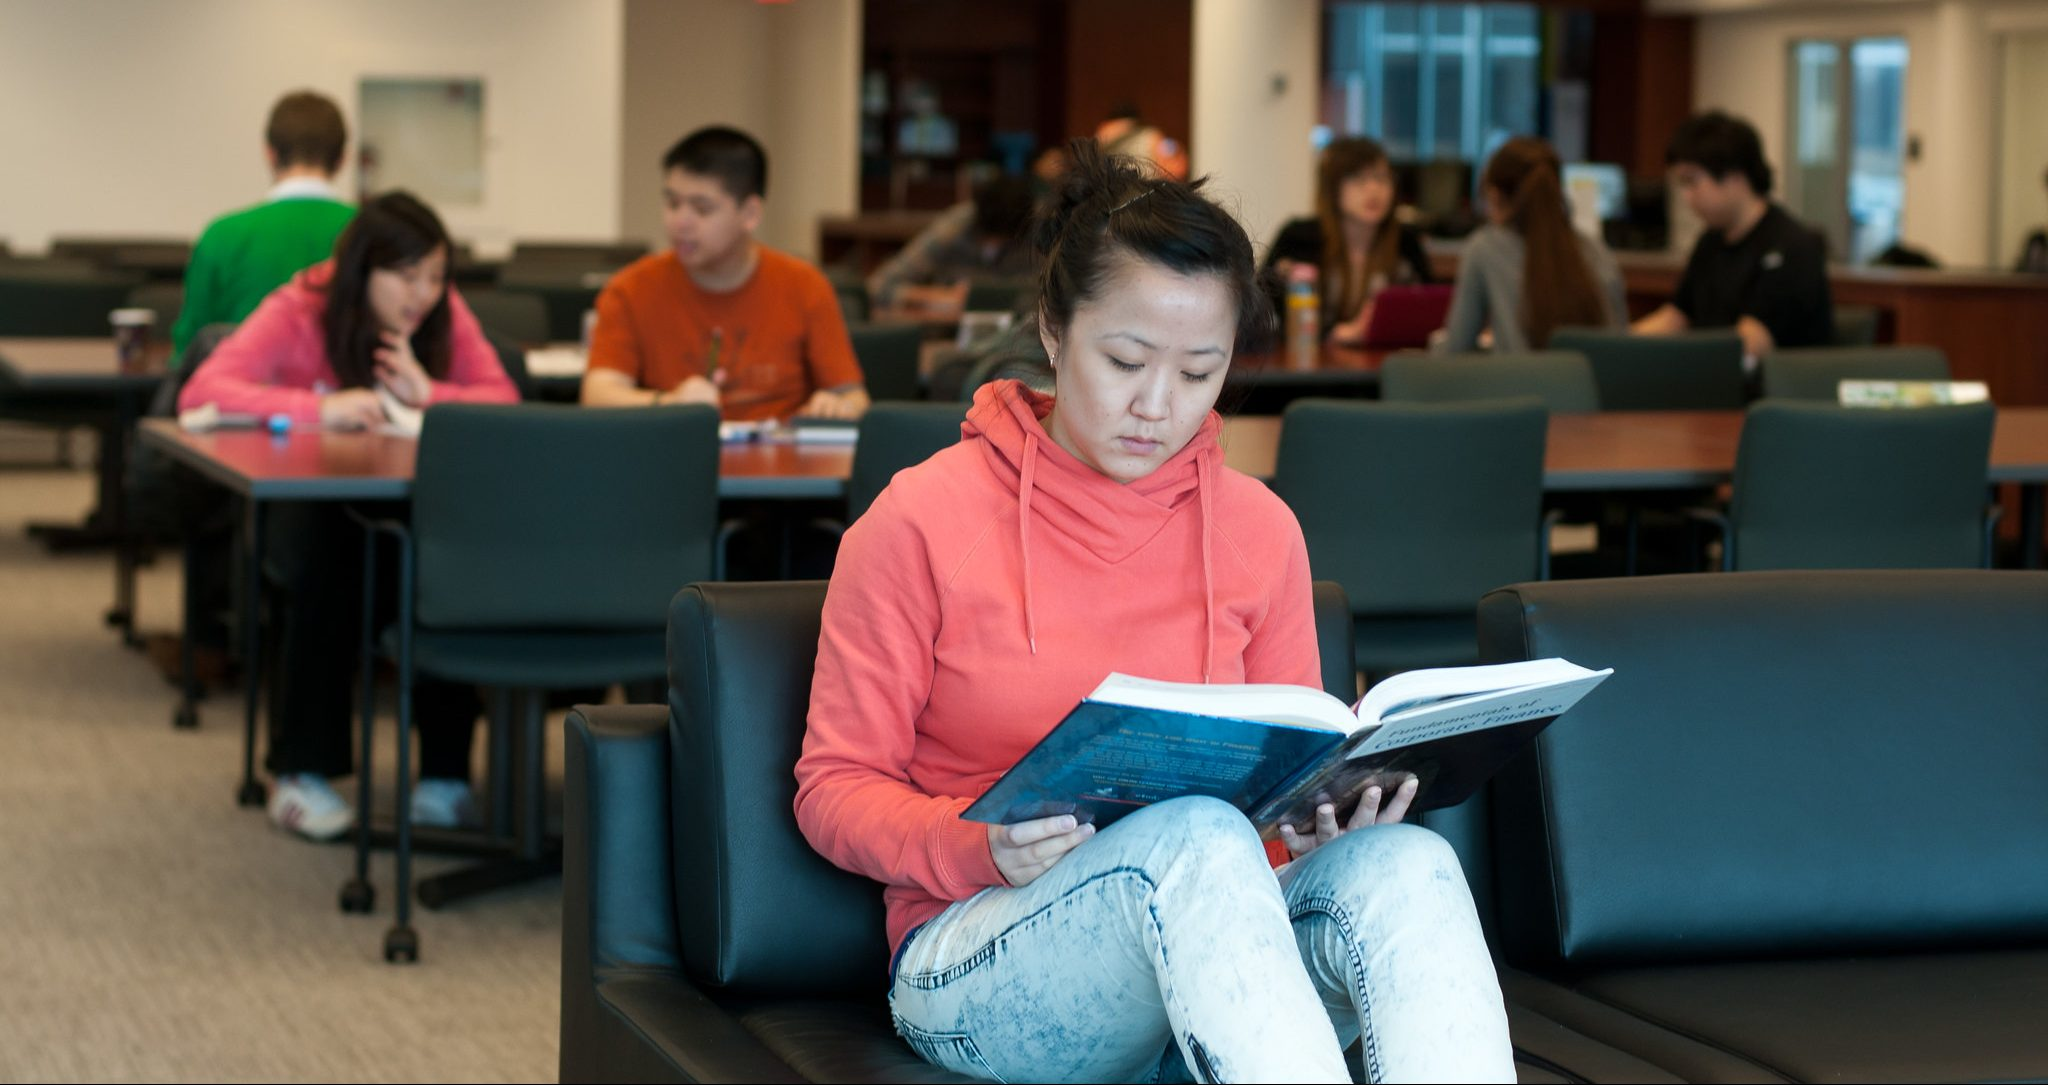 Student studying in a chair with a book open